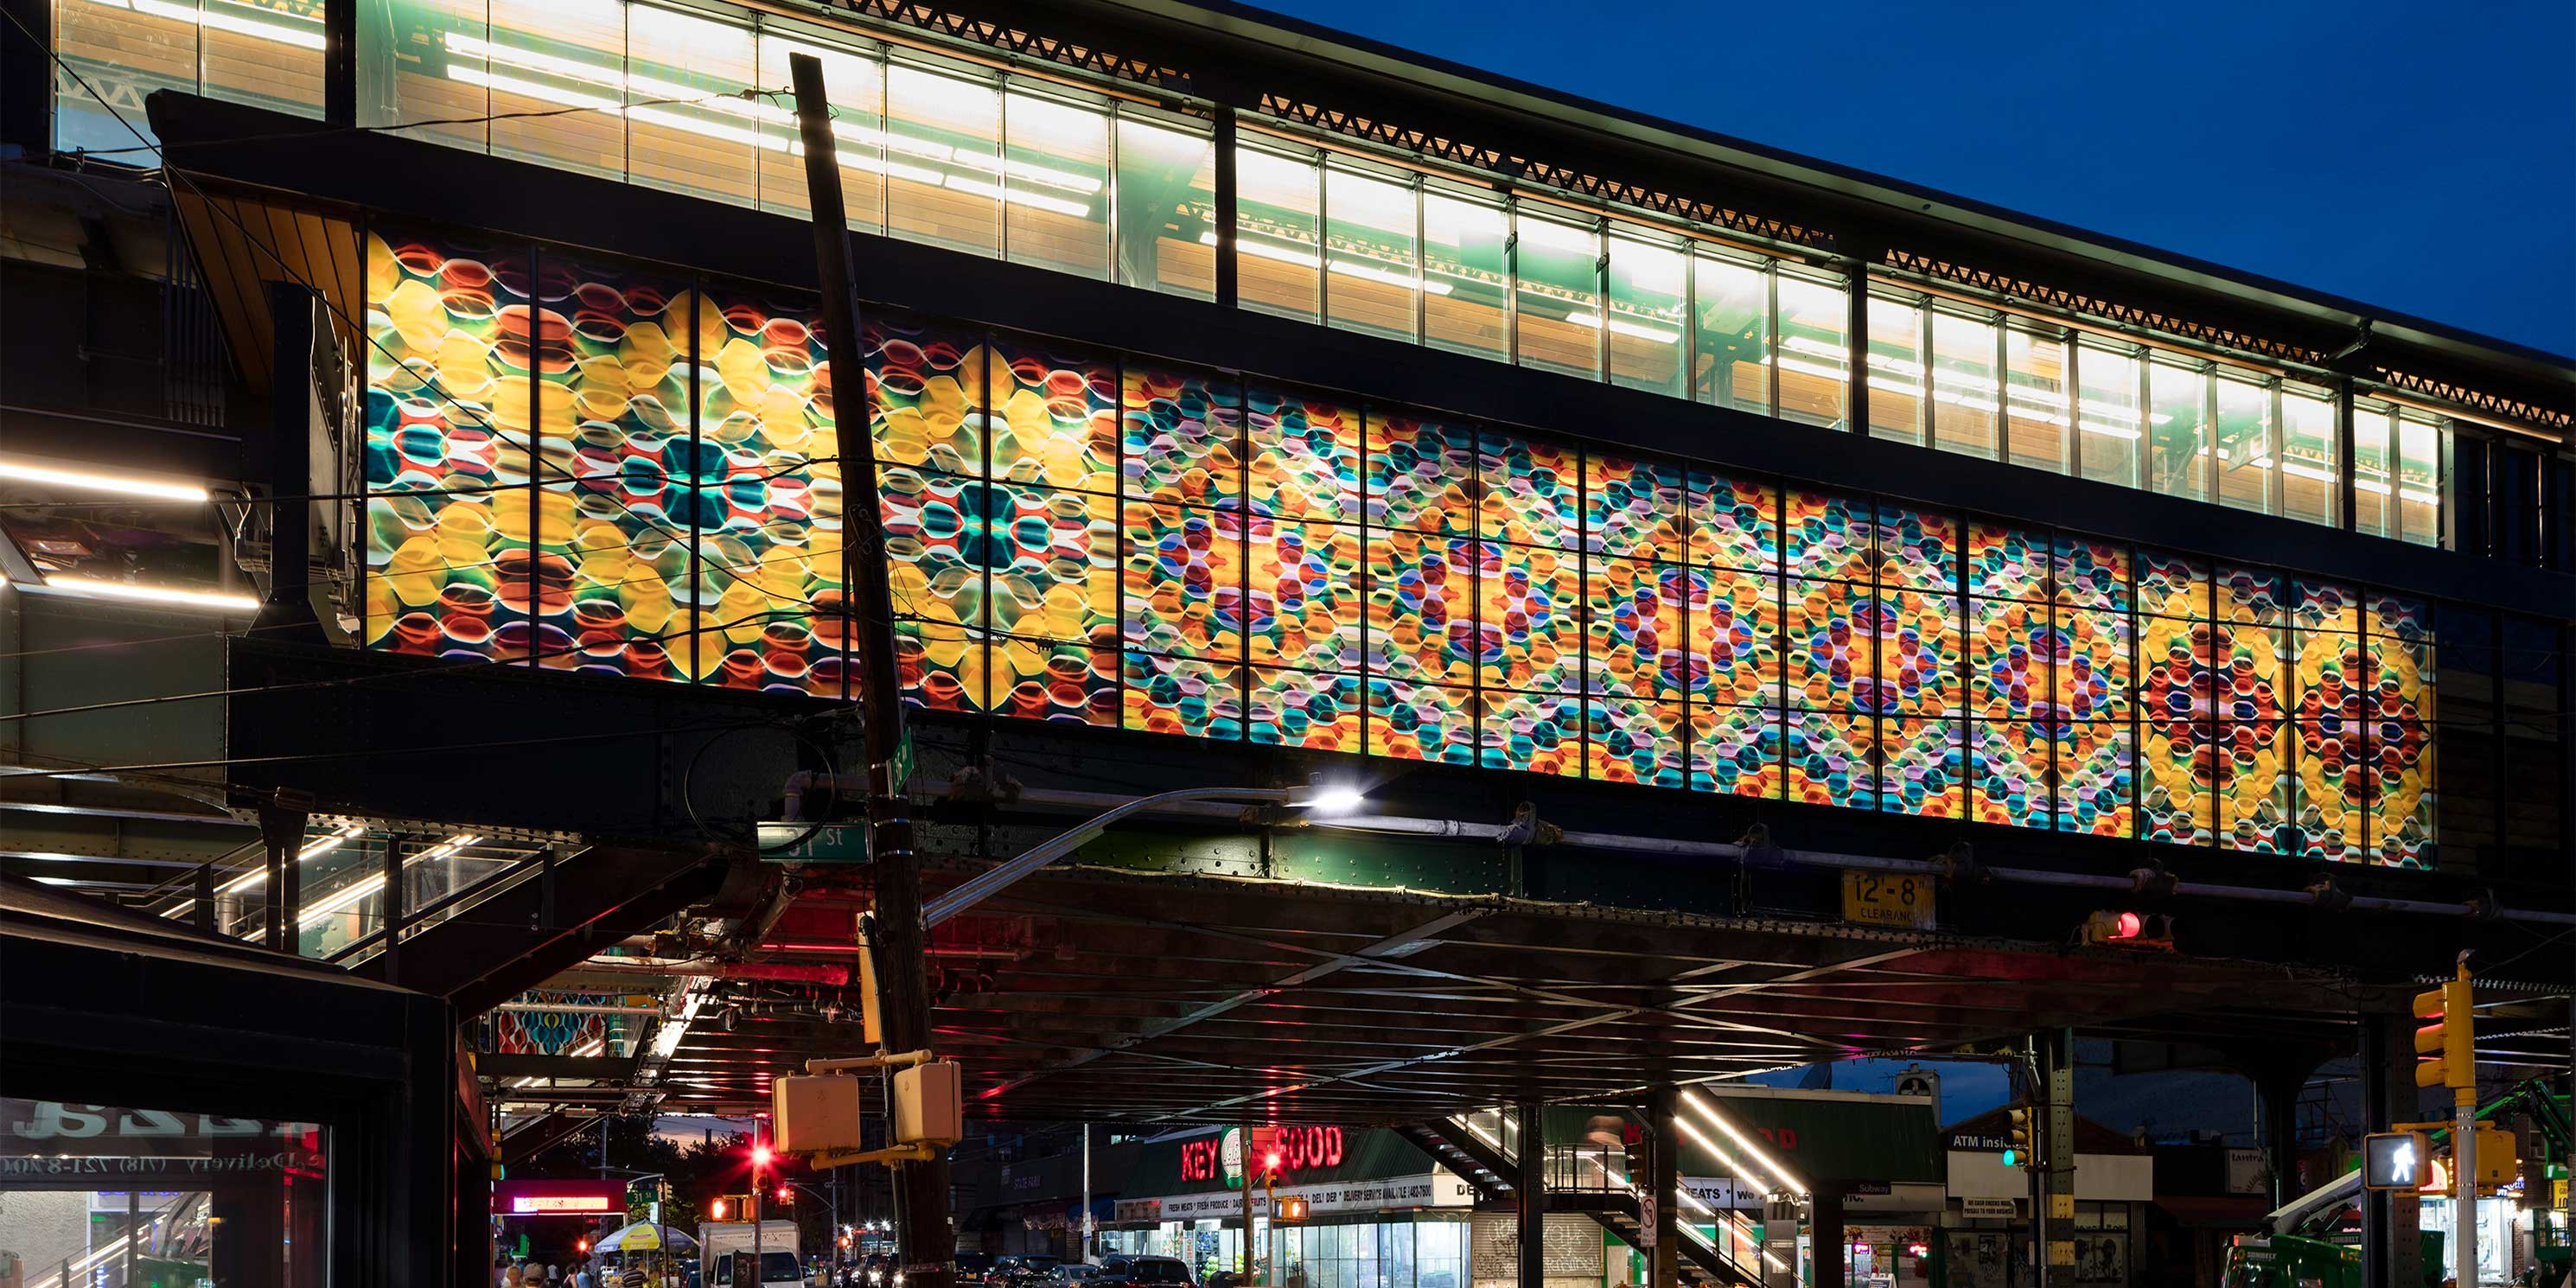 subway mural at 36 Avenue station in Astoria